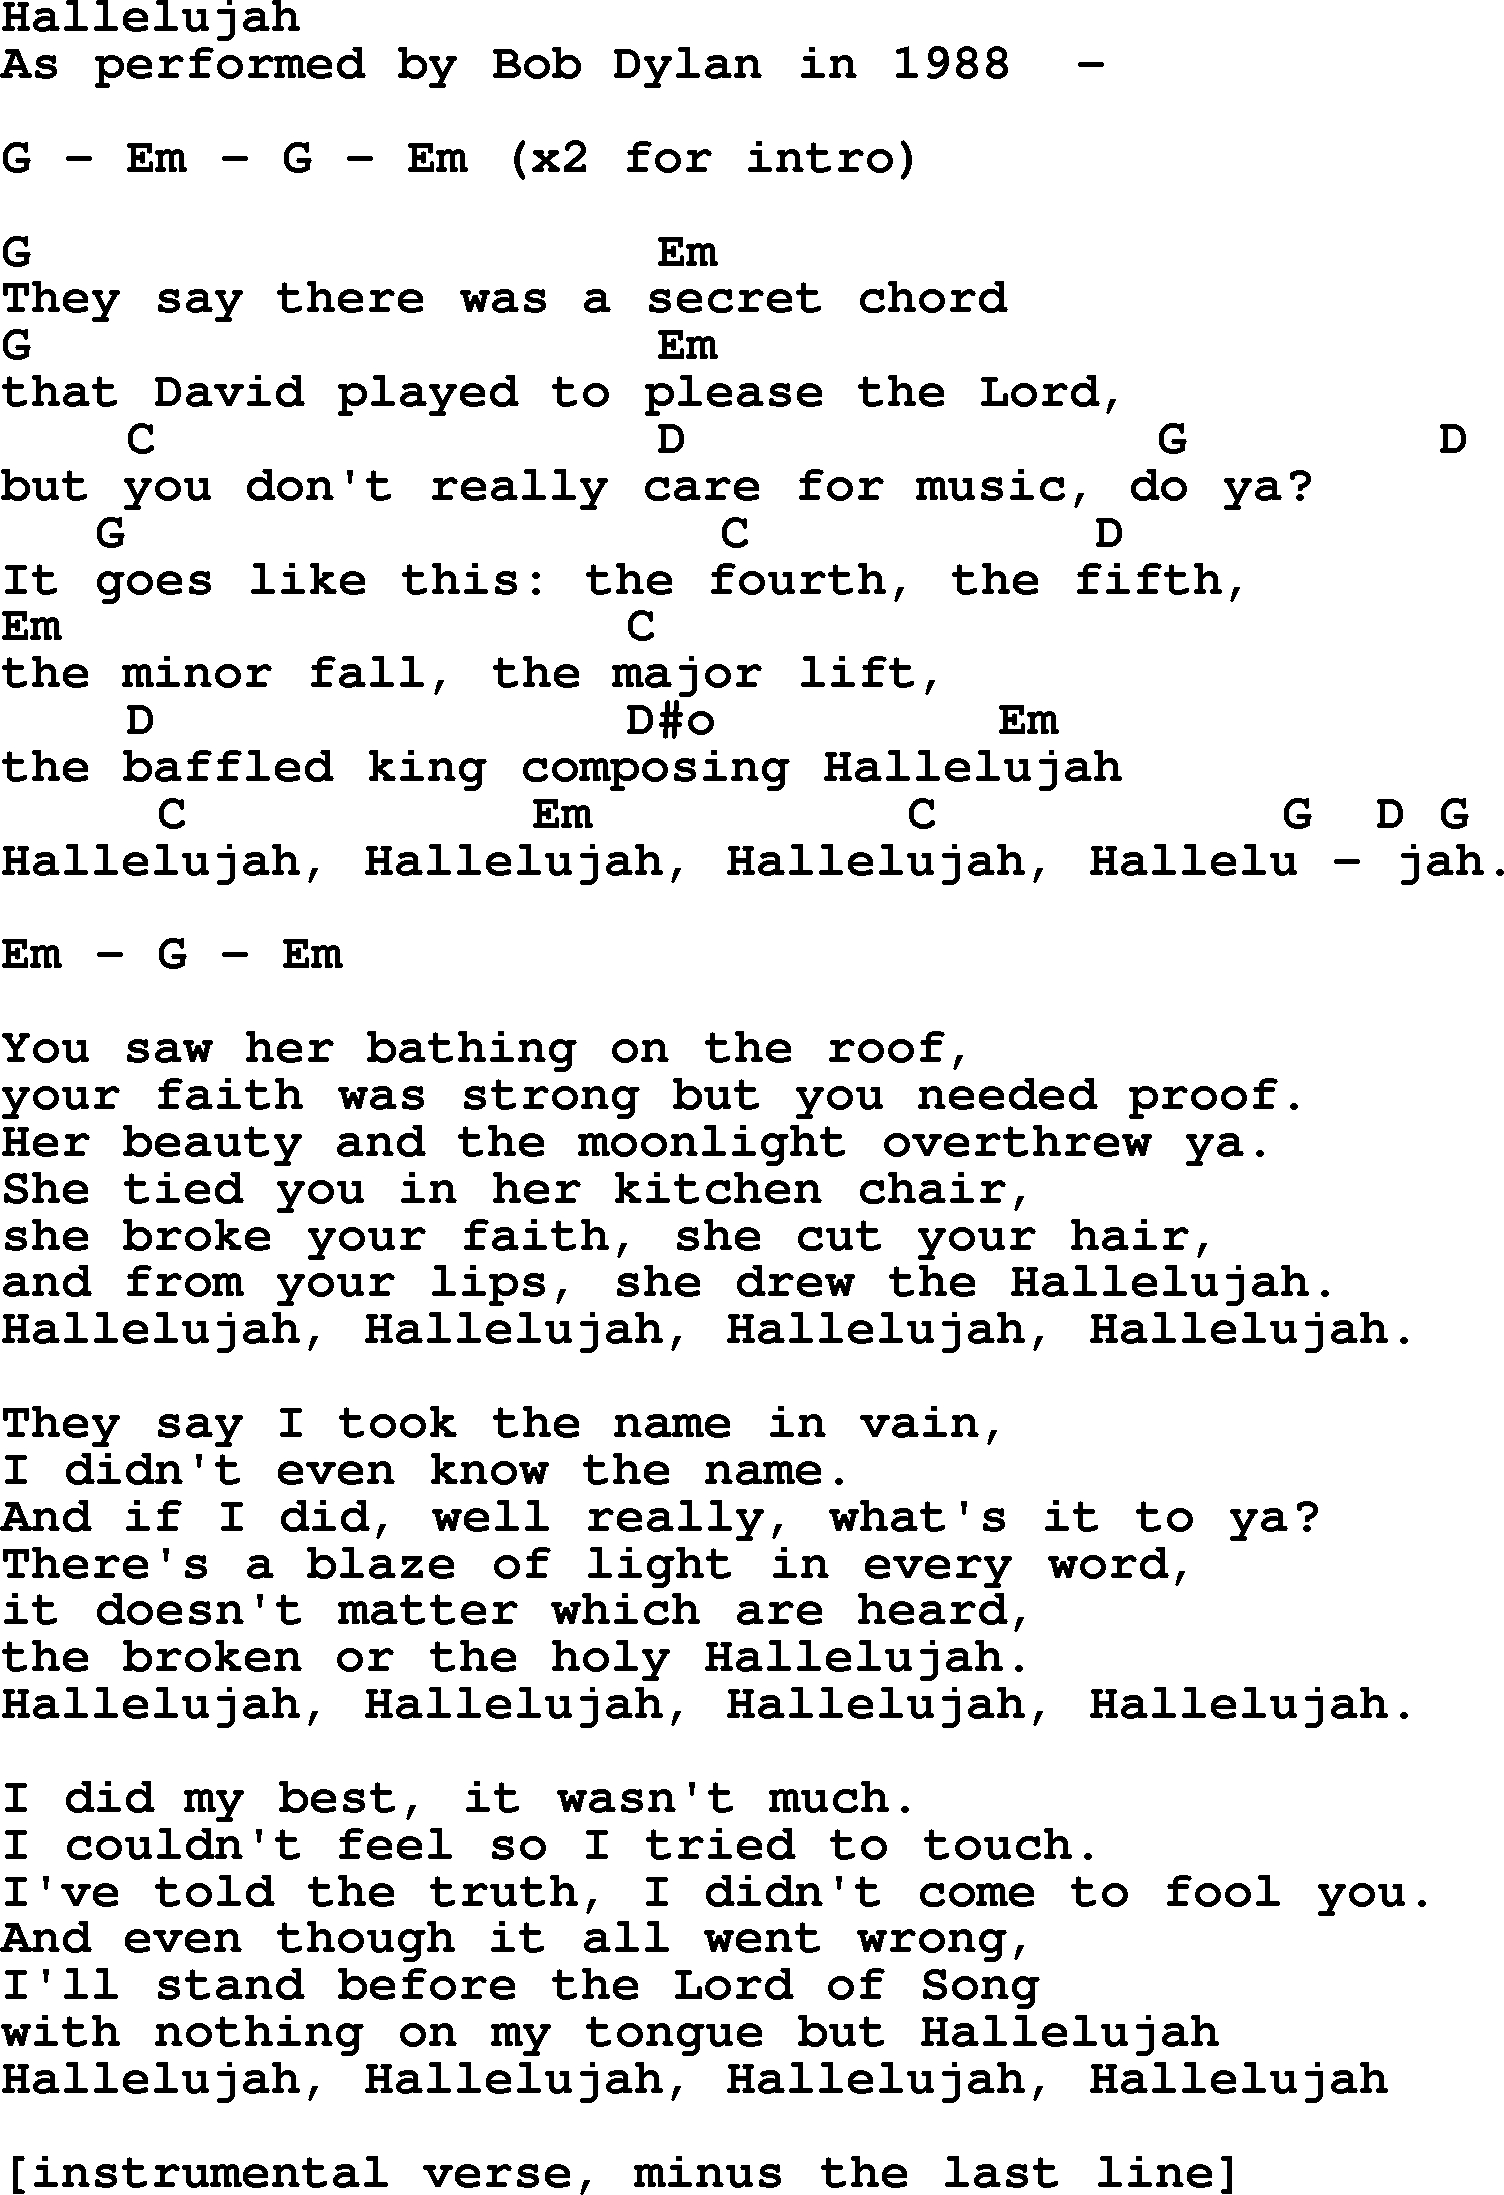 Hallelujah Ukulele Chords Bob Dylan Song Hallelujah Lyrics And Chords